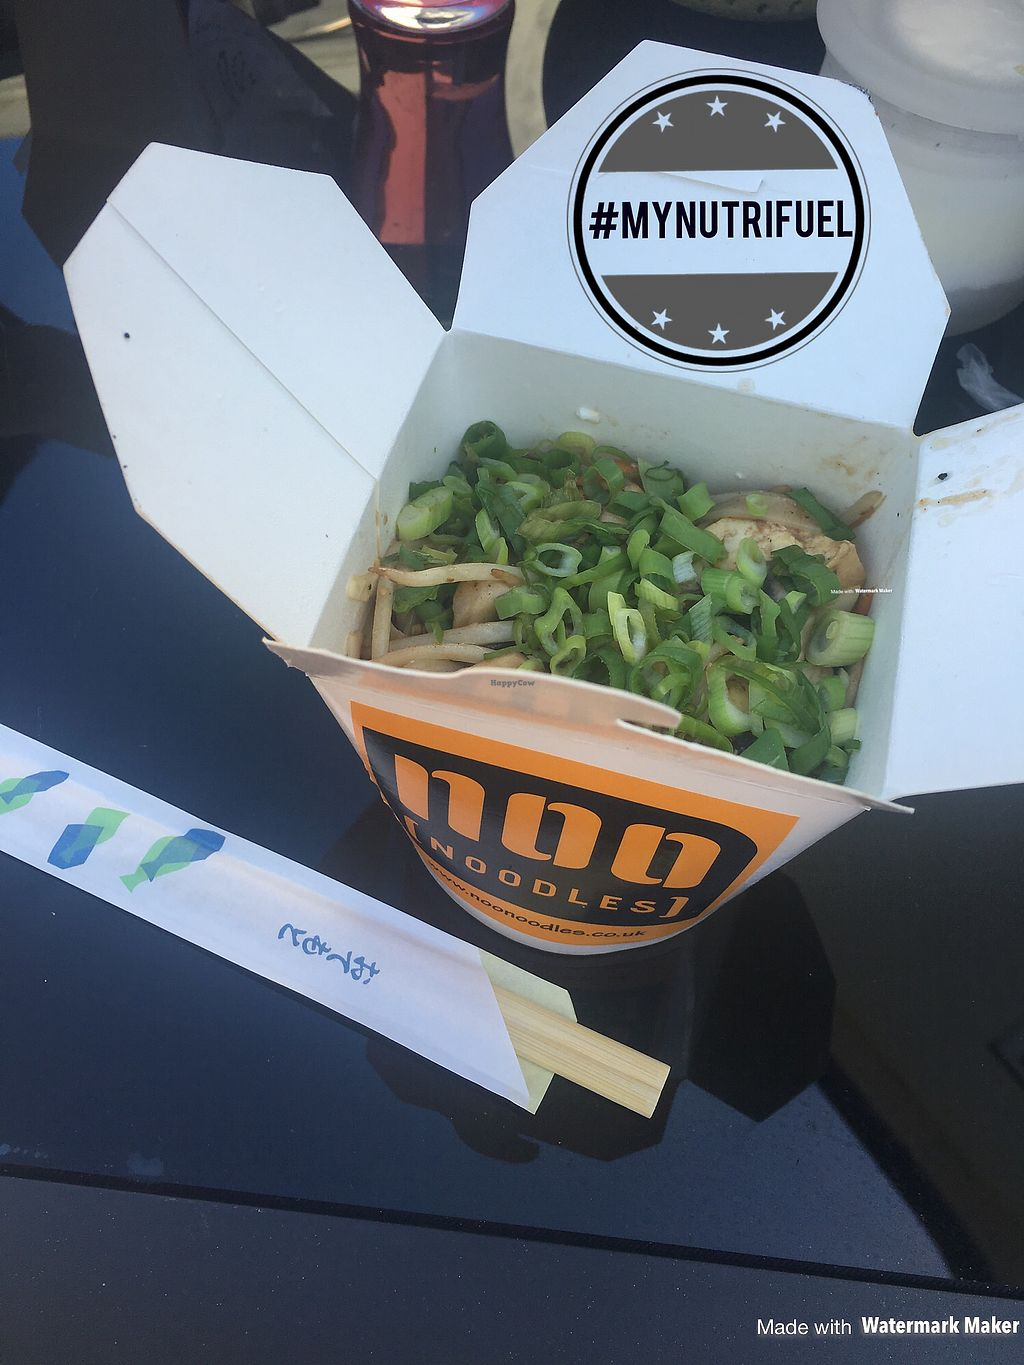 "Photo of Noo Noodles  by <a href=""/members/profile/MyNutriFuel"">MyNutriFuel</a> <br/>Tofu, veg and rice noodles  #mynutrifuel <br/> July 10, 2017  - <a href='/contact/abuse/image/95909/278860'>Report</a>"